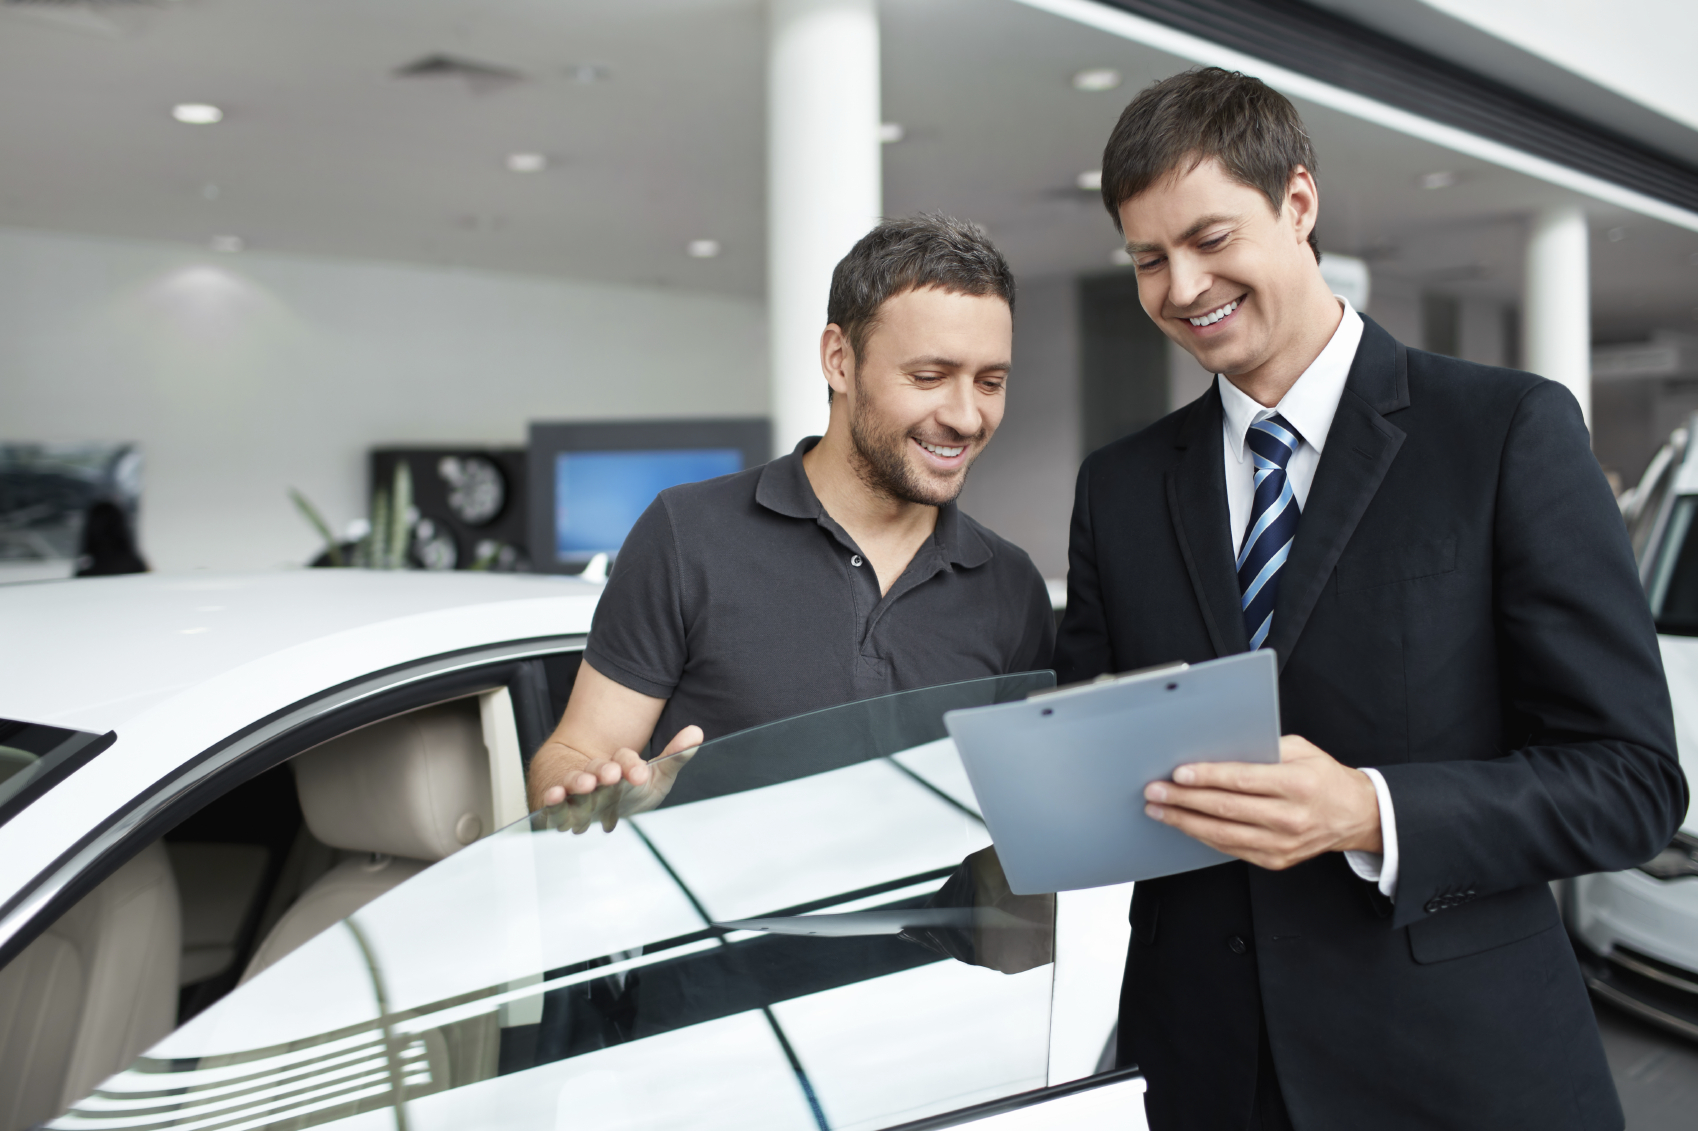 Let Us Show You Around the Dealership!